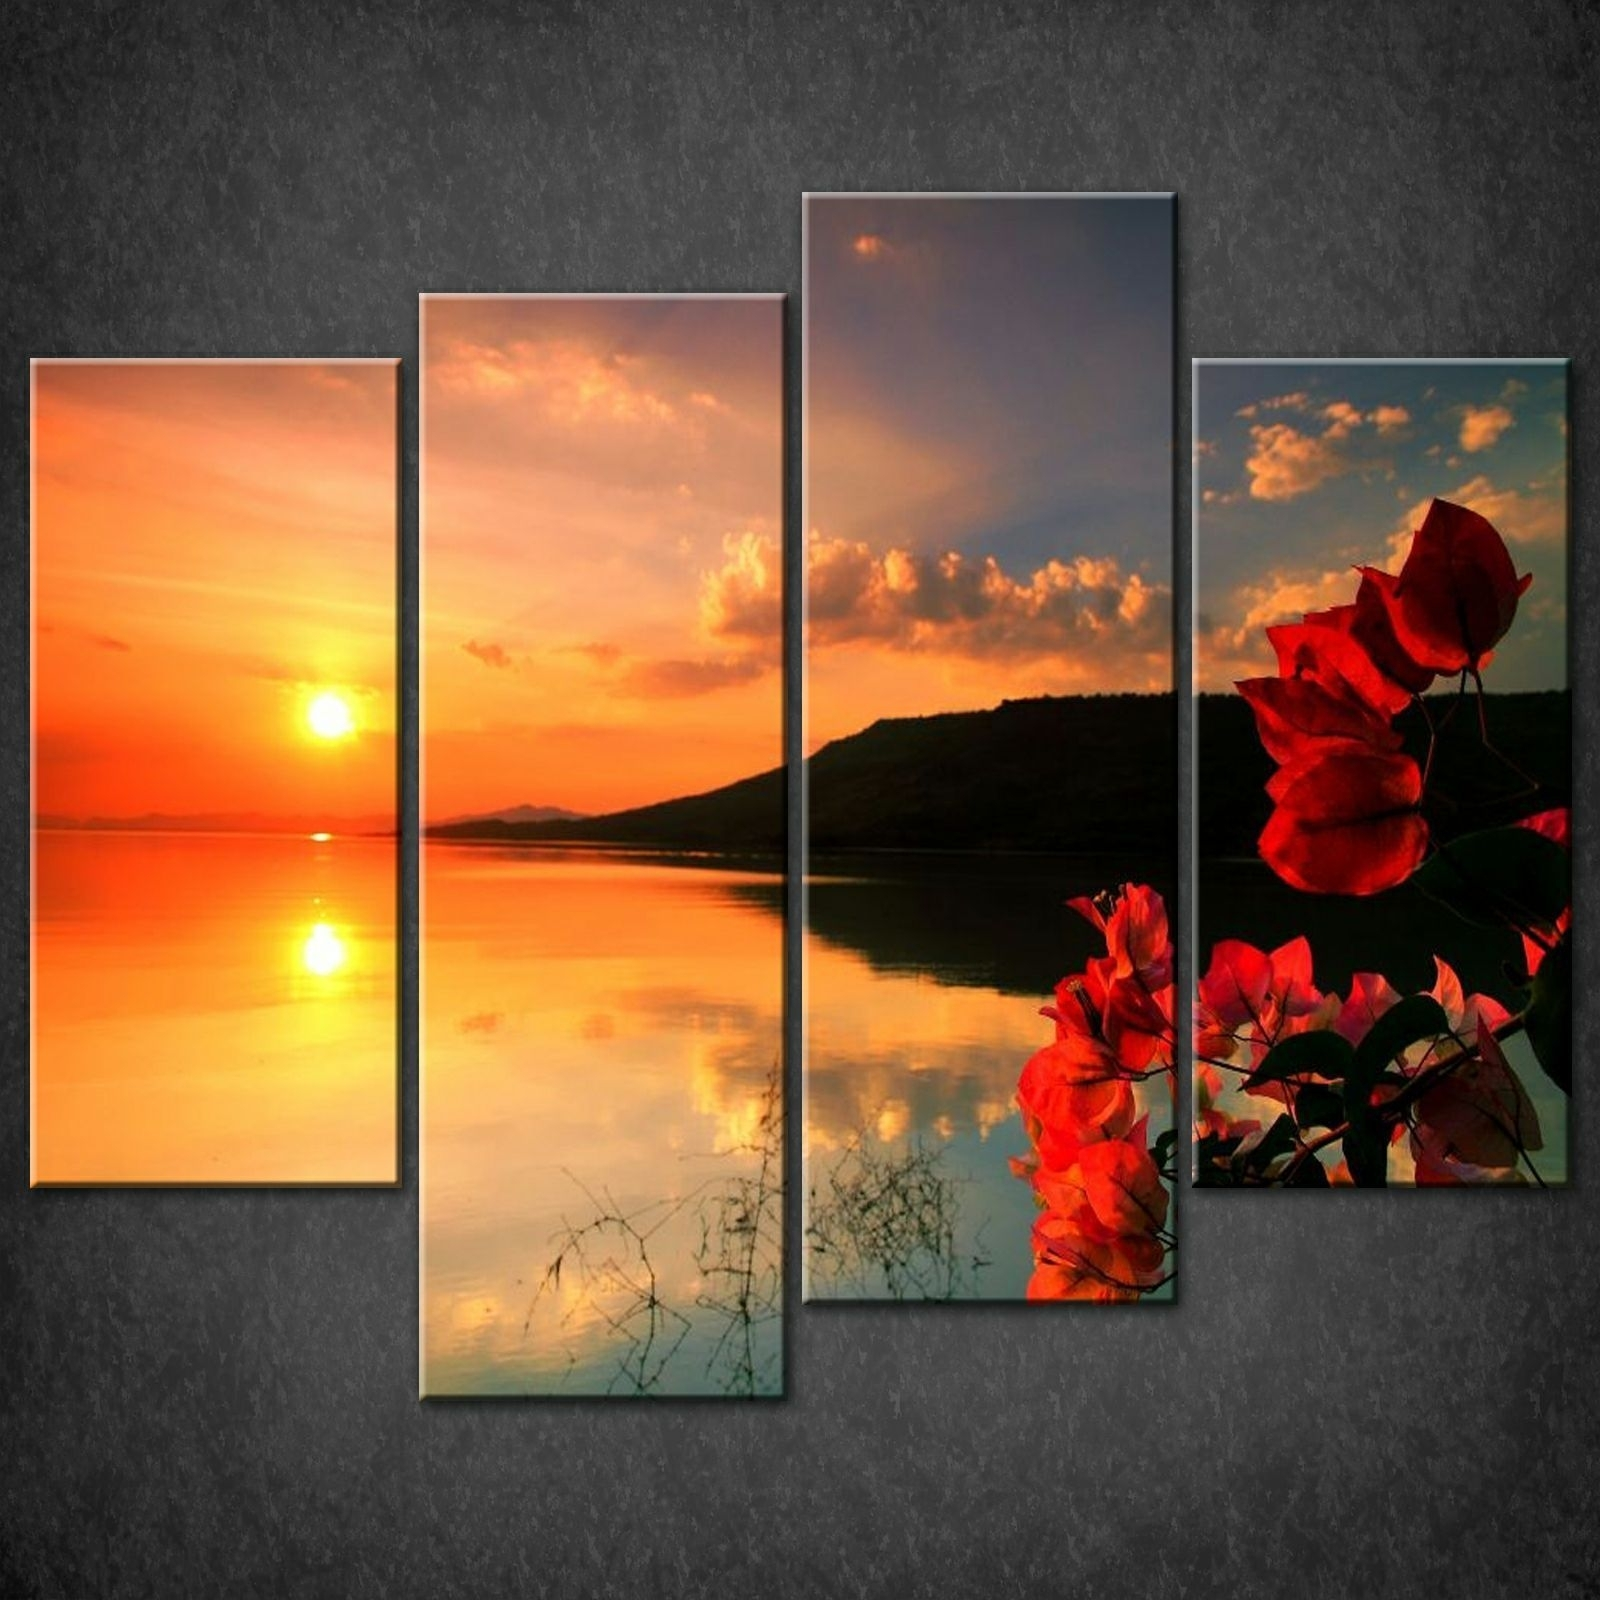 Amazing Wall Art Canvas Prints Con Fine Site In Most Popular Framed Canvas Art Prints (View 4 of 15)